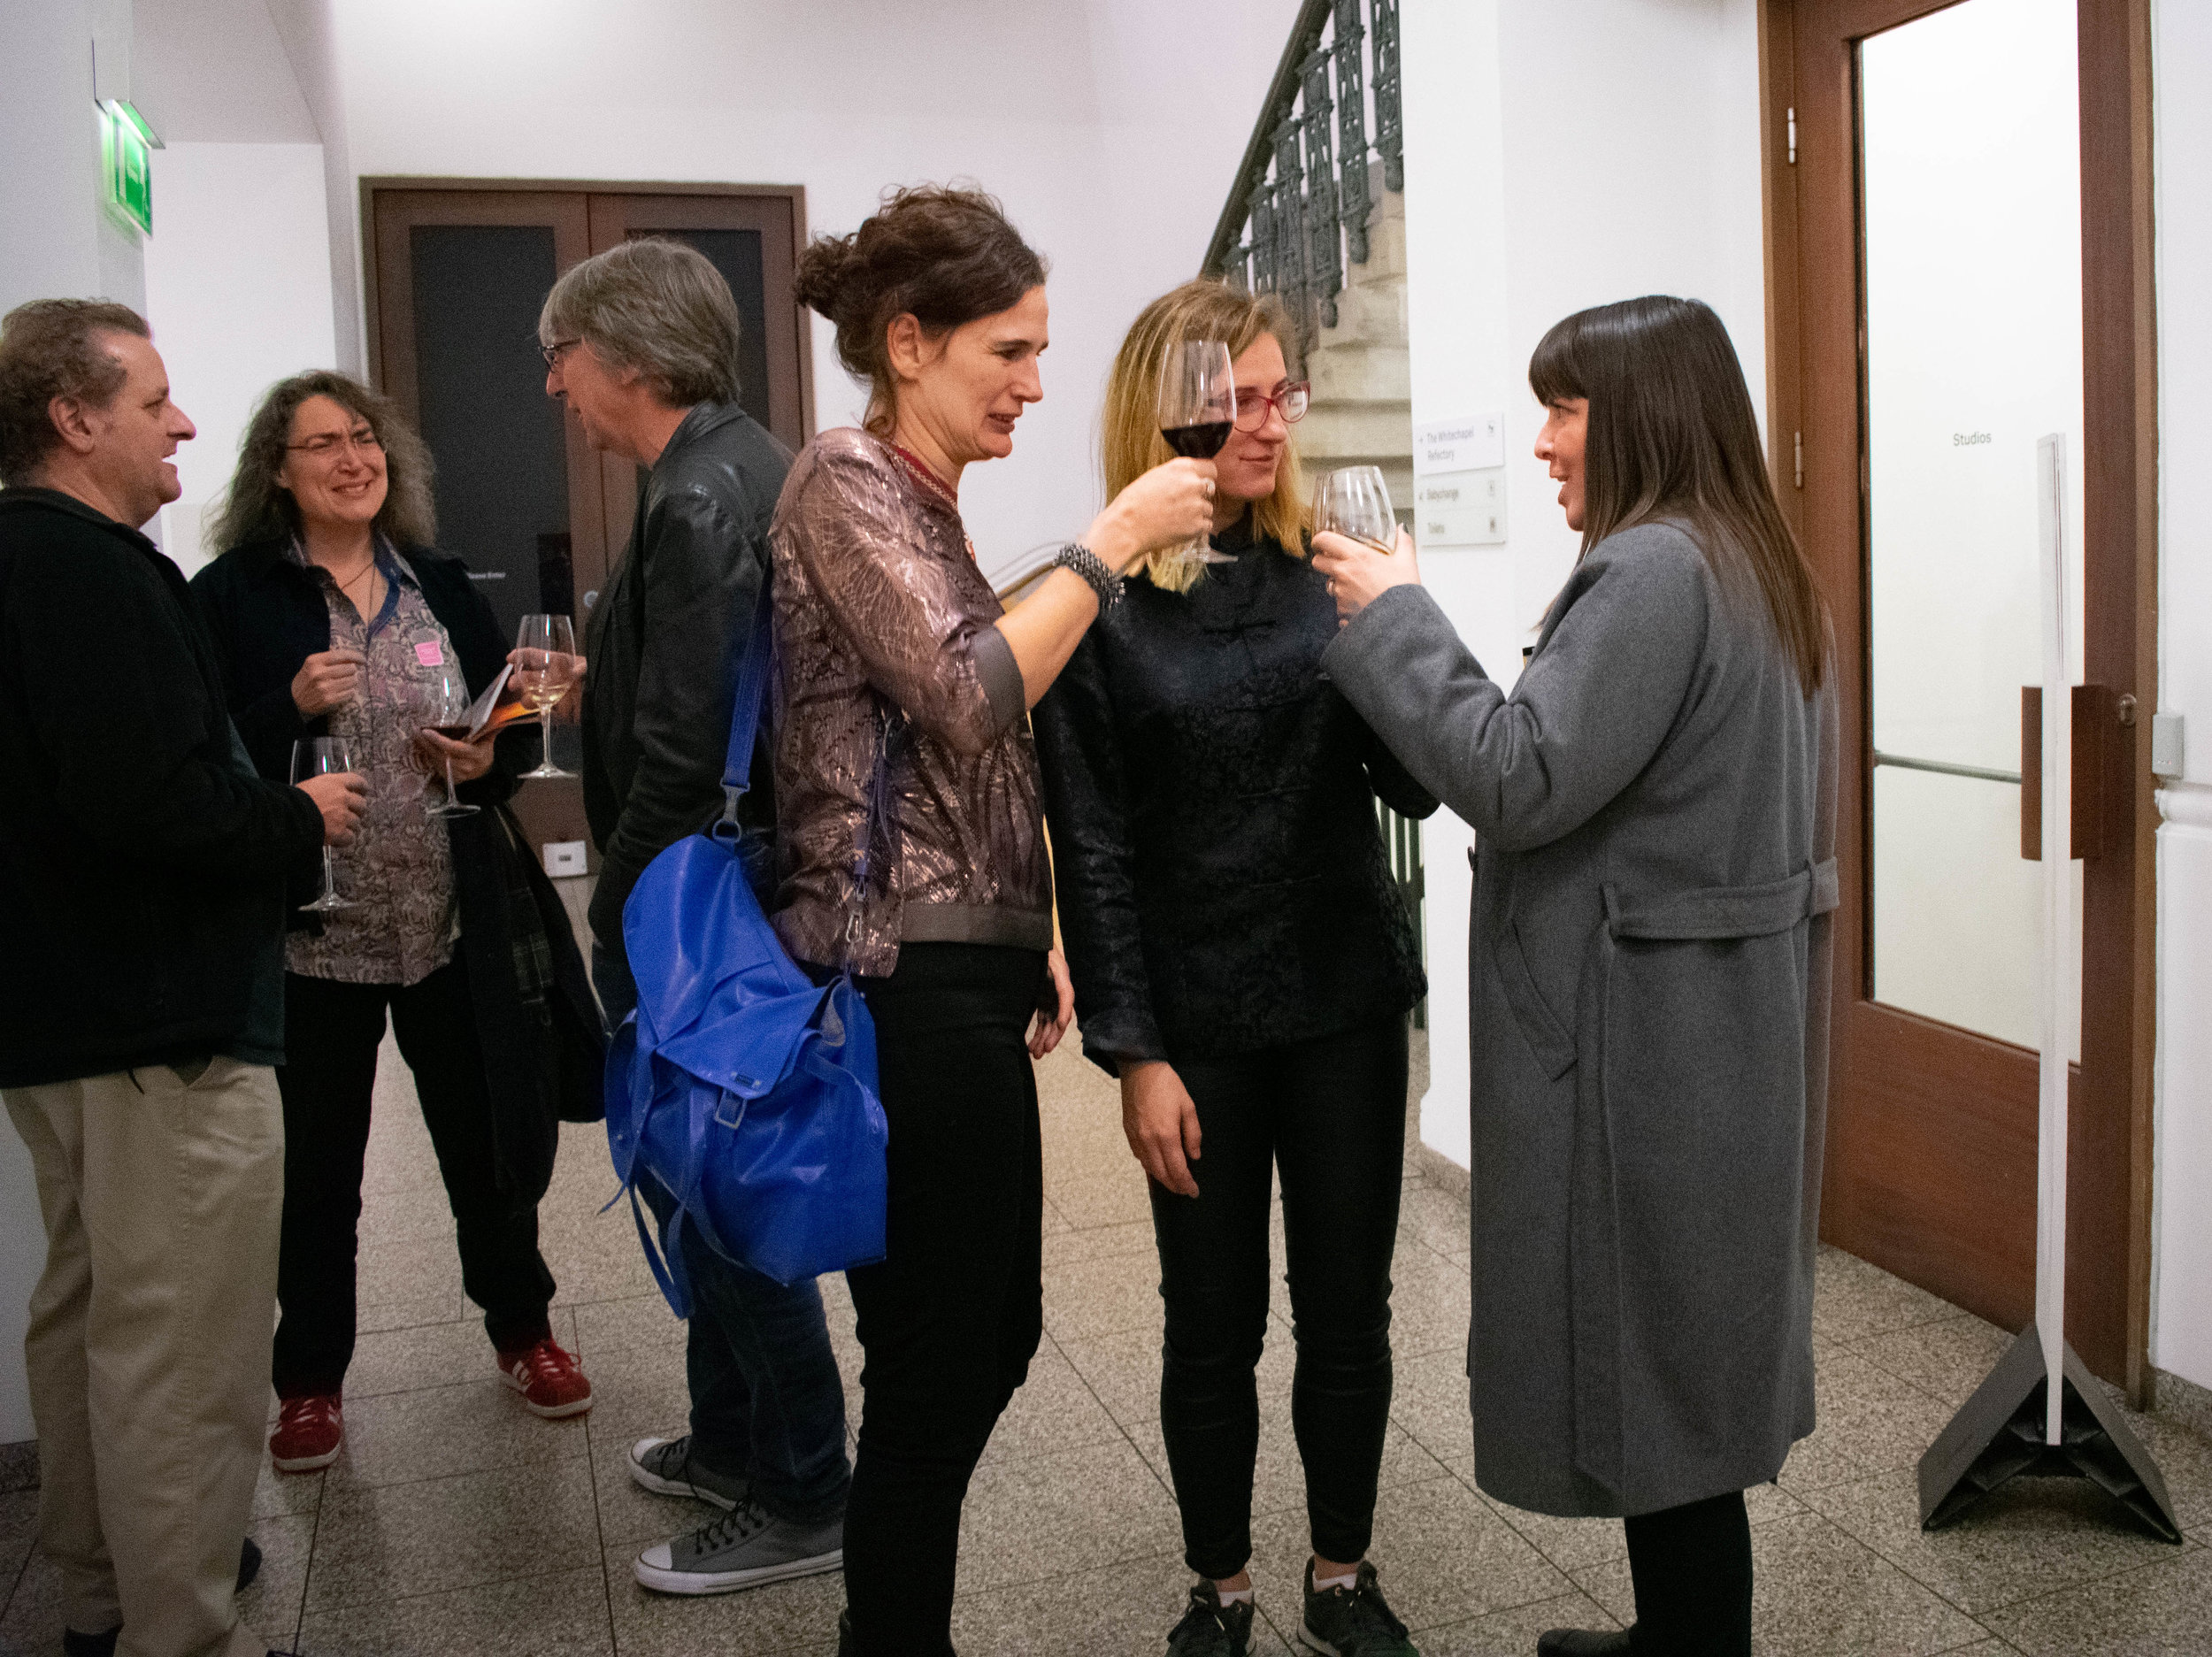 With Sam Jury and curator Sanna Moore. Photo by Photo by Zula Ra